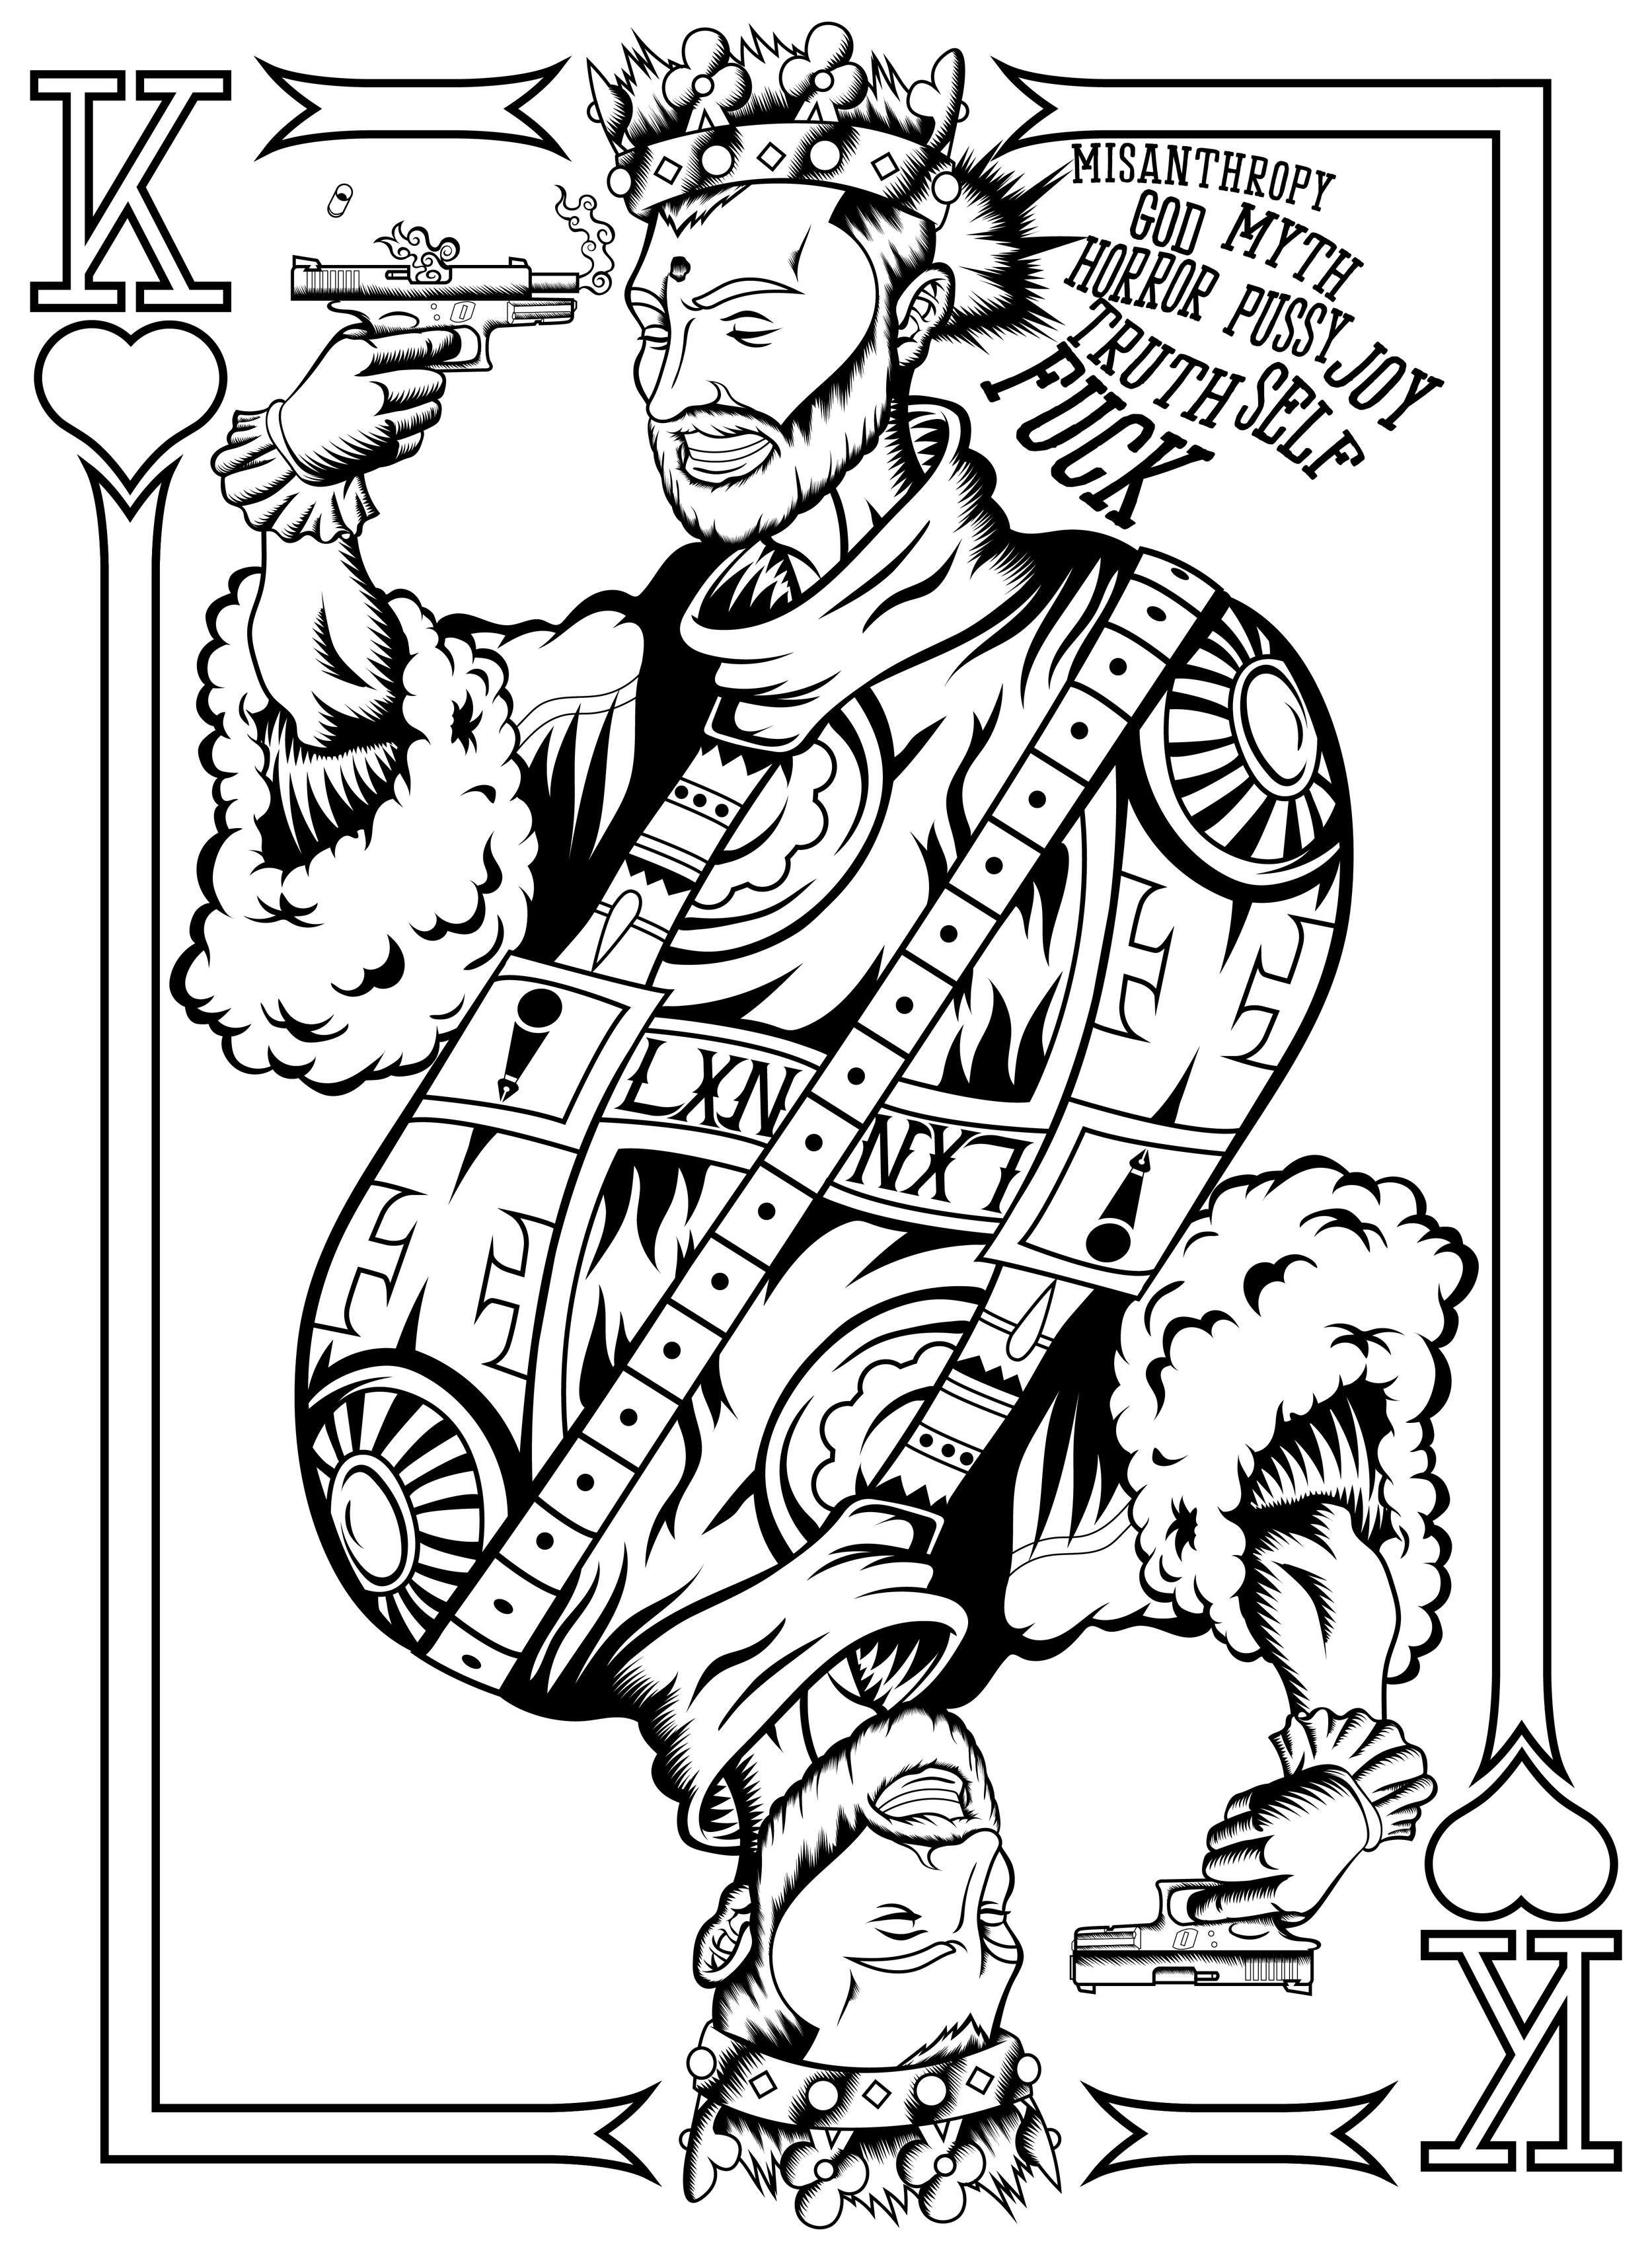 king-of-hearts-illustration-matt-dorman-comedy-comedian-lasvegas-vegas-roberto-orozco-design-studio-artist-art-digital-graphic-design-playing-card-illustrative-red-purple-crown-royal-royalty-glock-lxn-one-color-black-white.jpg